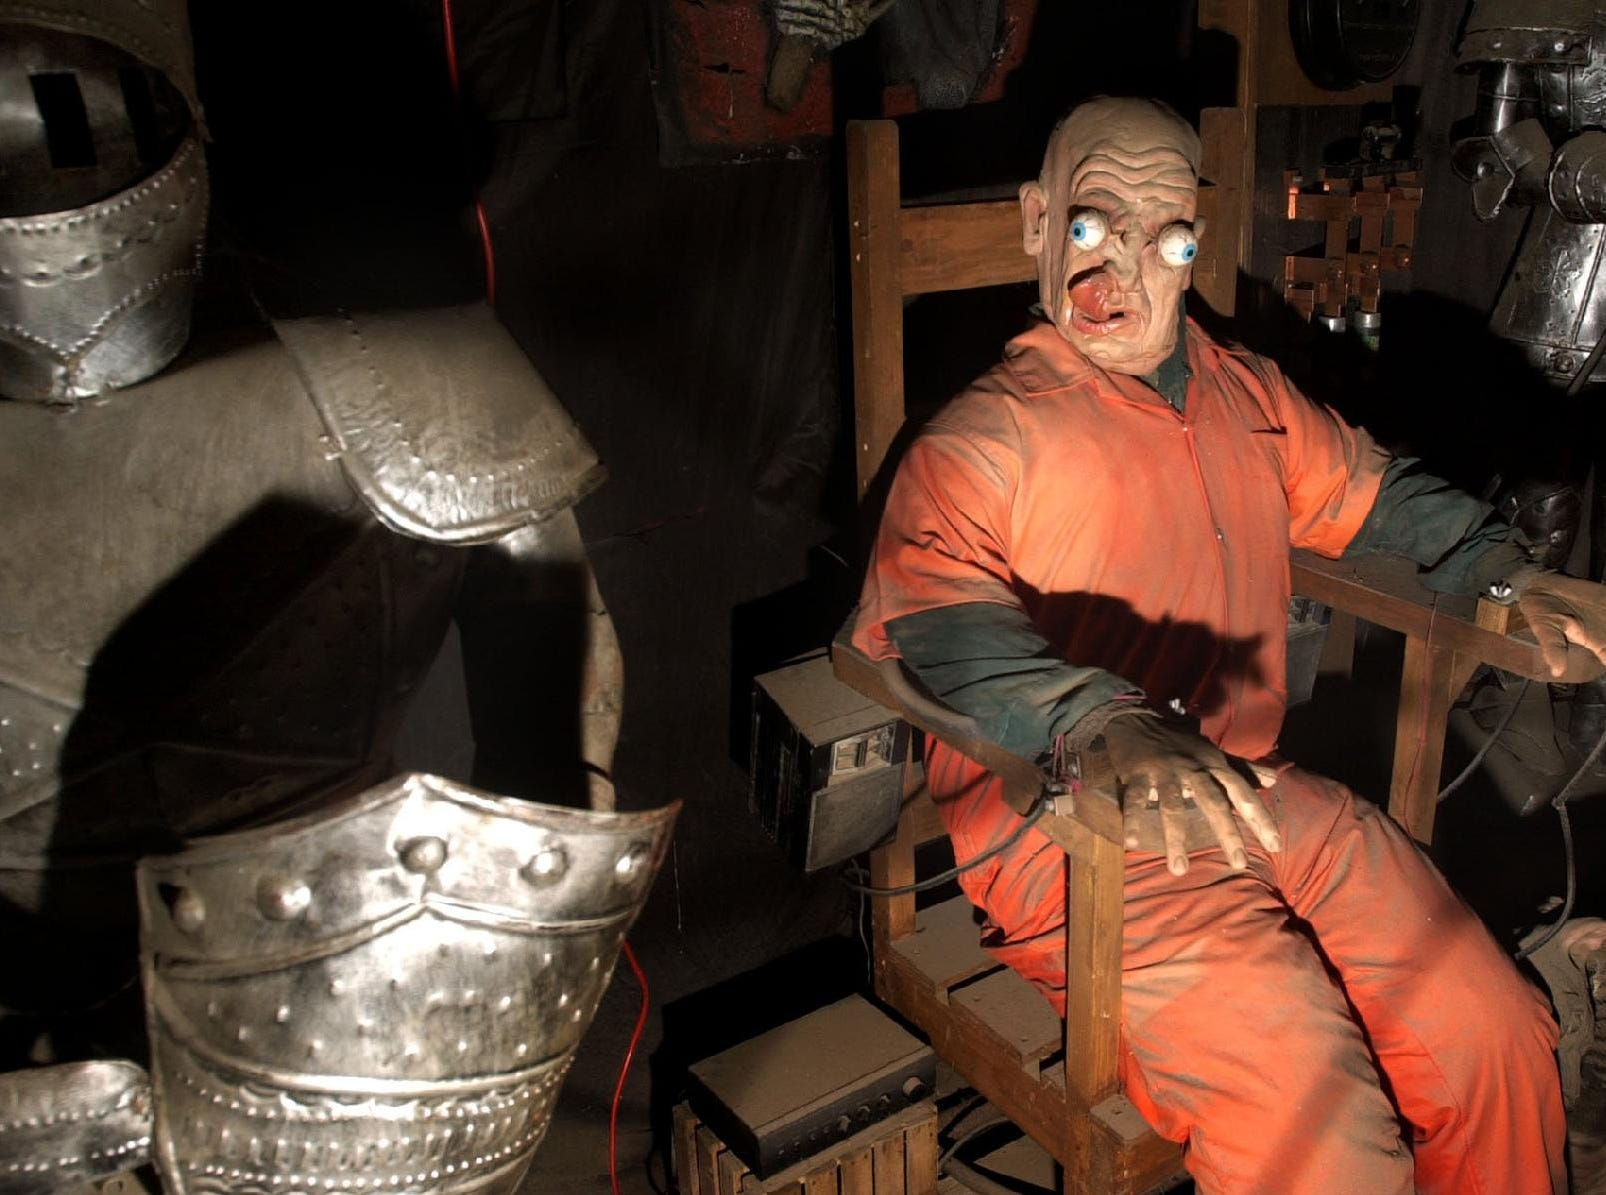 2001: One of the scary scenes in the Spook Barn at Iron Kettle Farm in Candor.